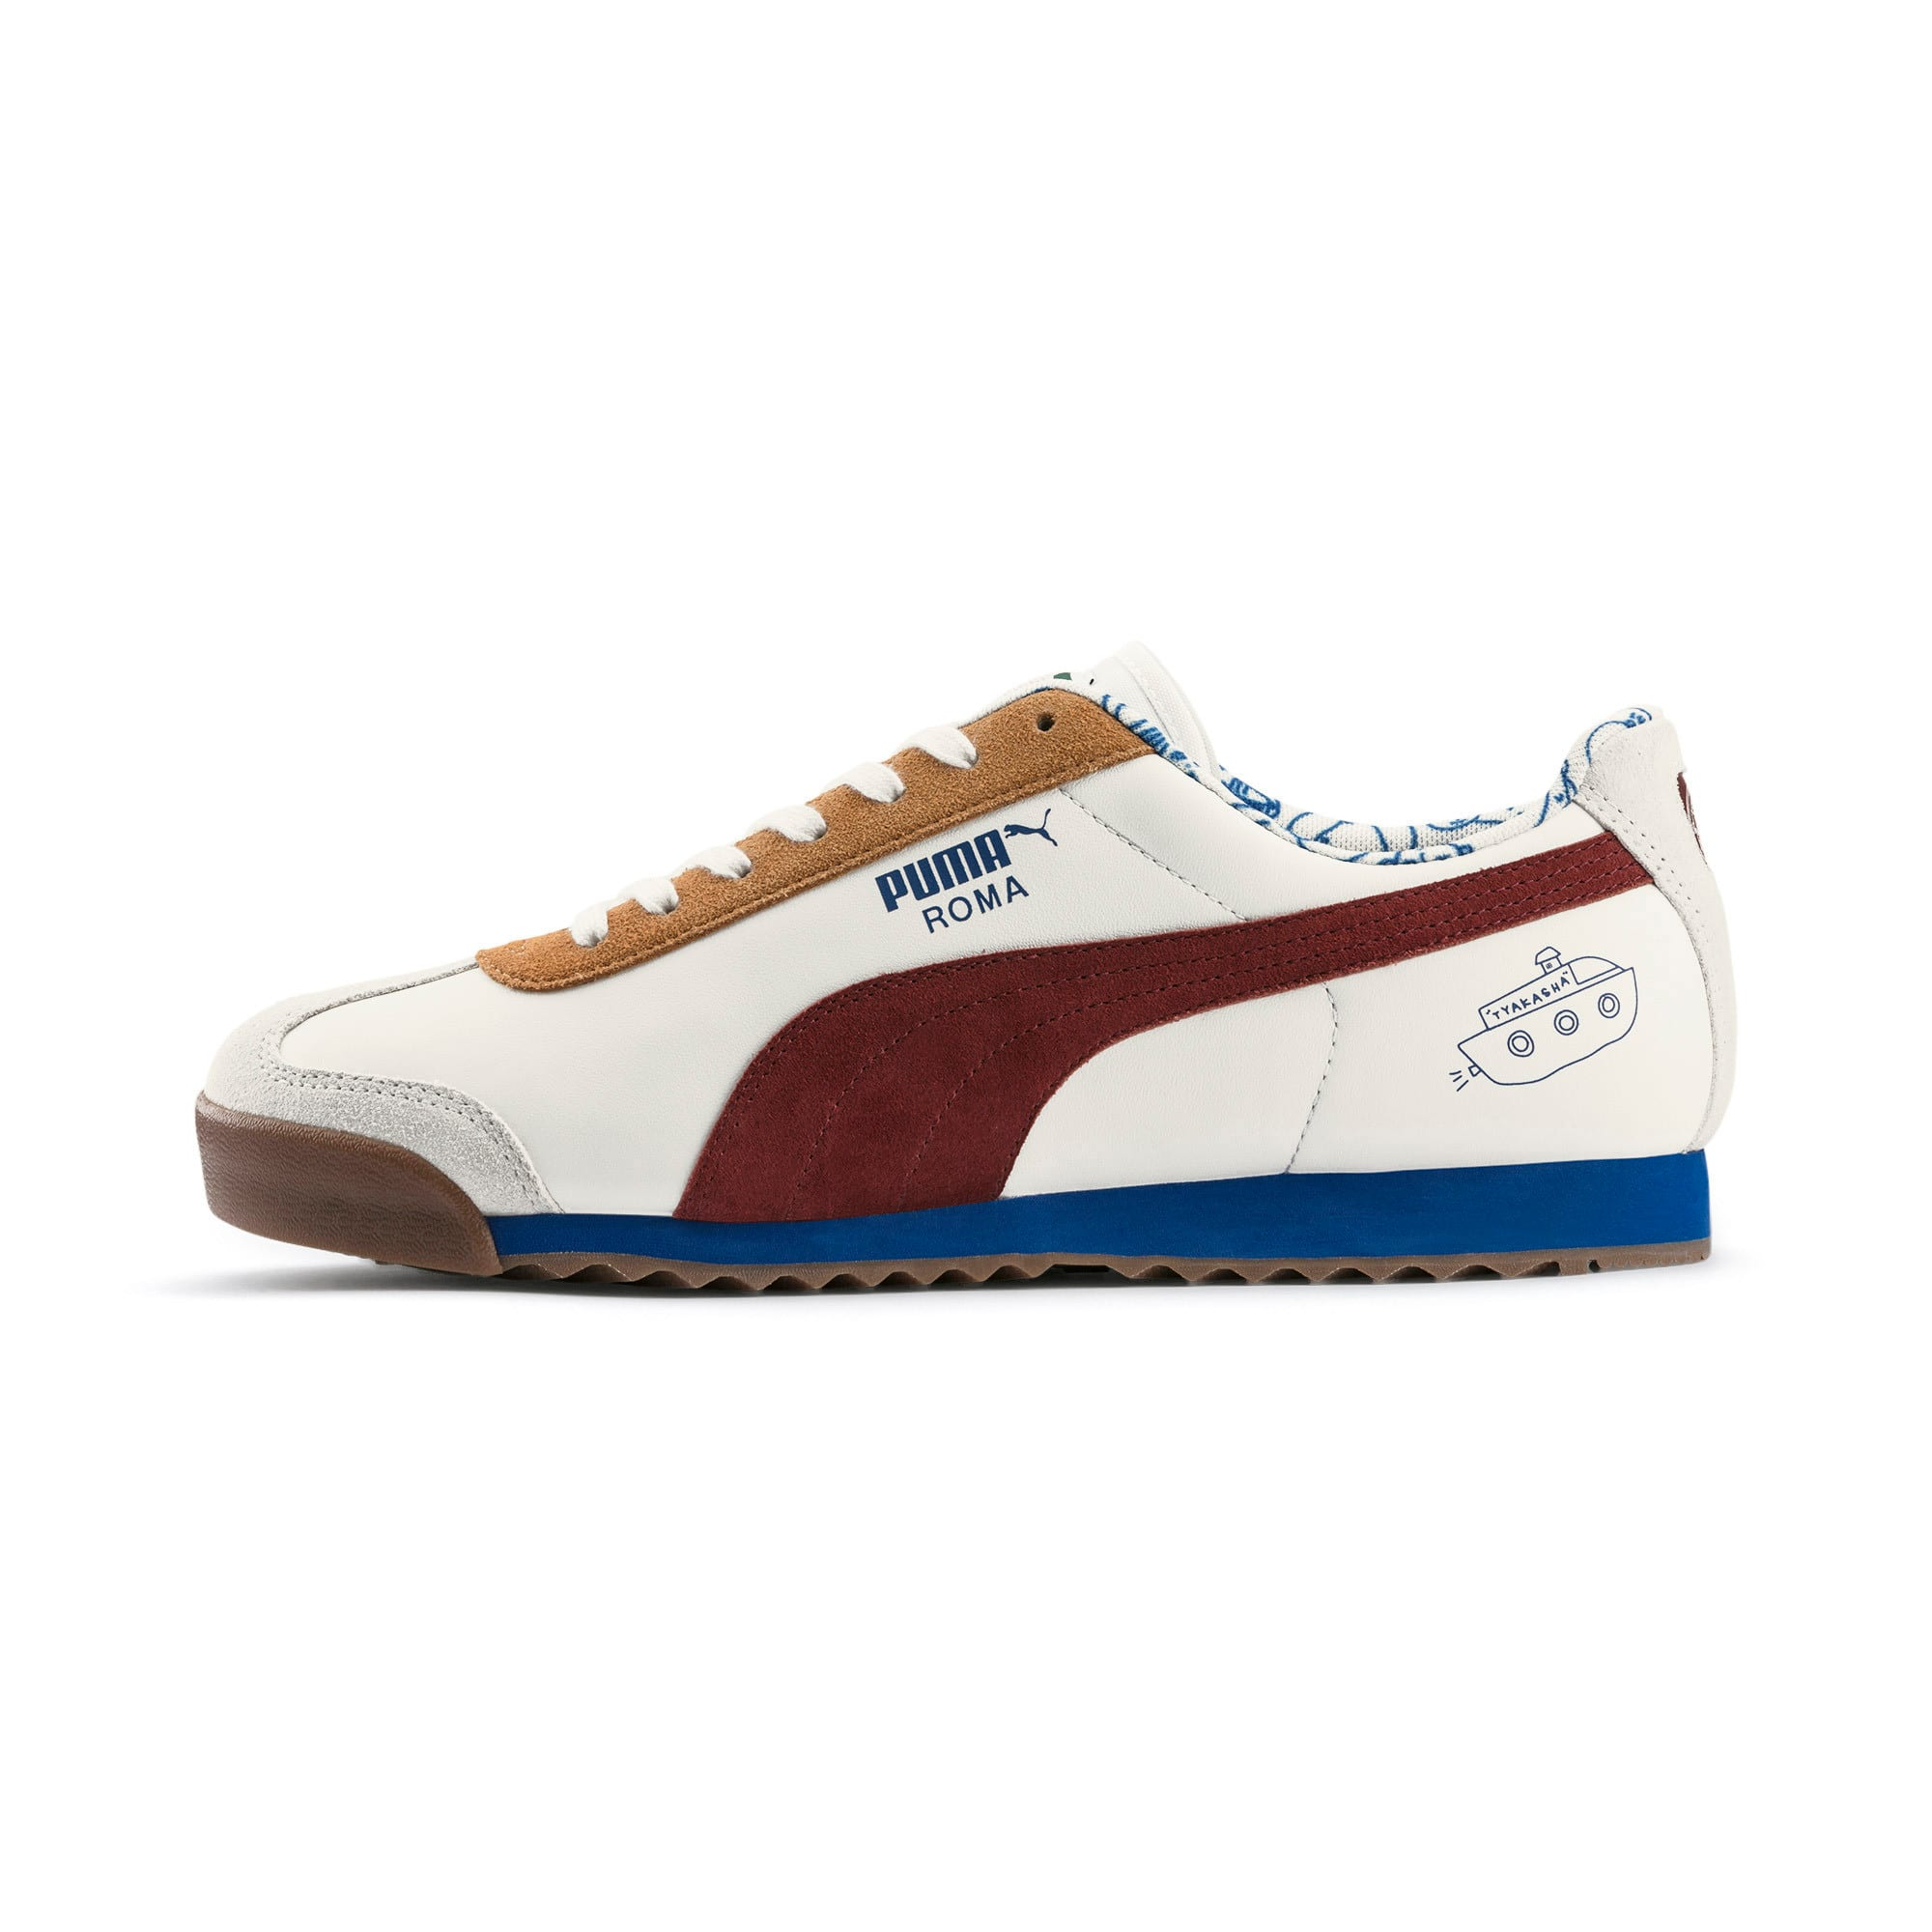 Thumbnail 1 of PUMA x TYAKASHA Roma Trainers, Marshmallow-Fired Brick, medium